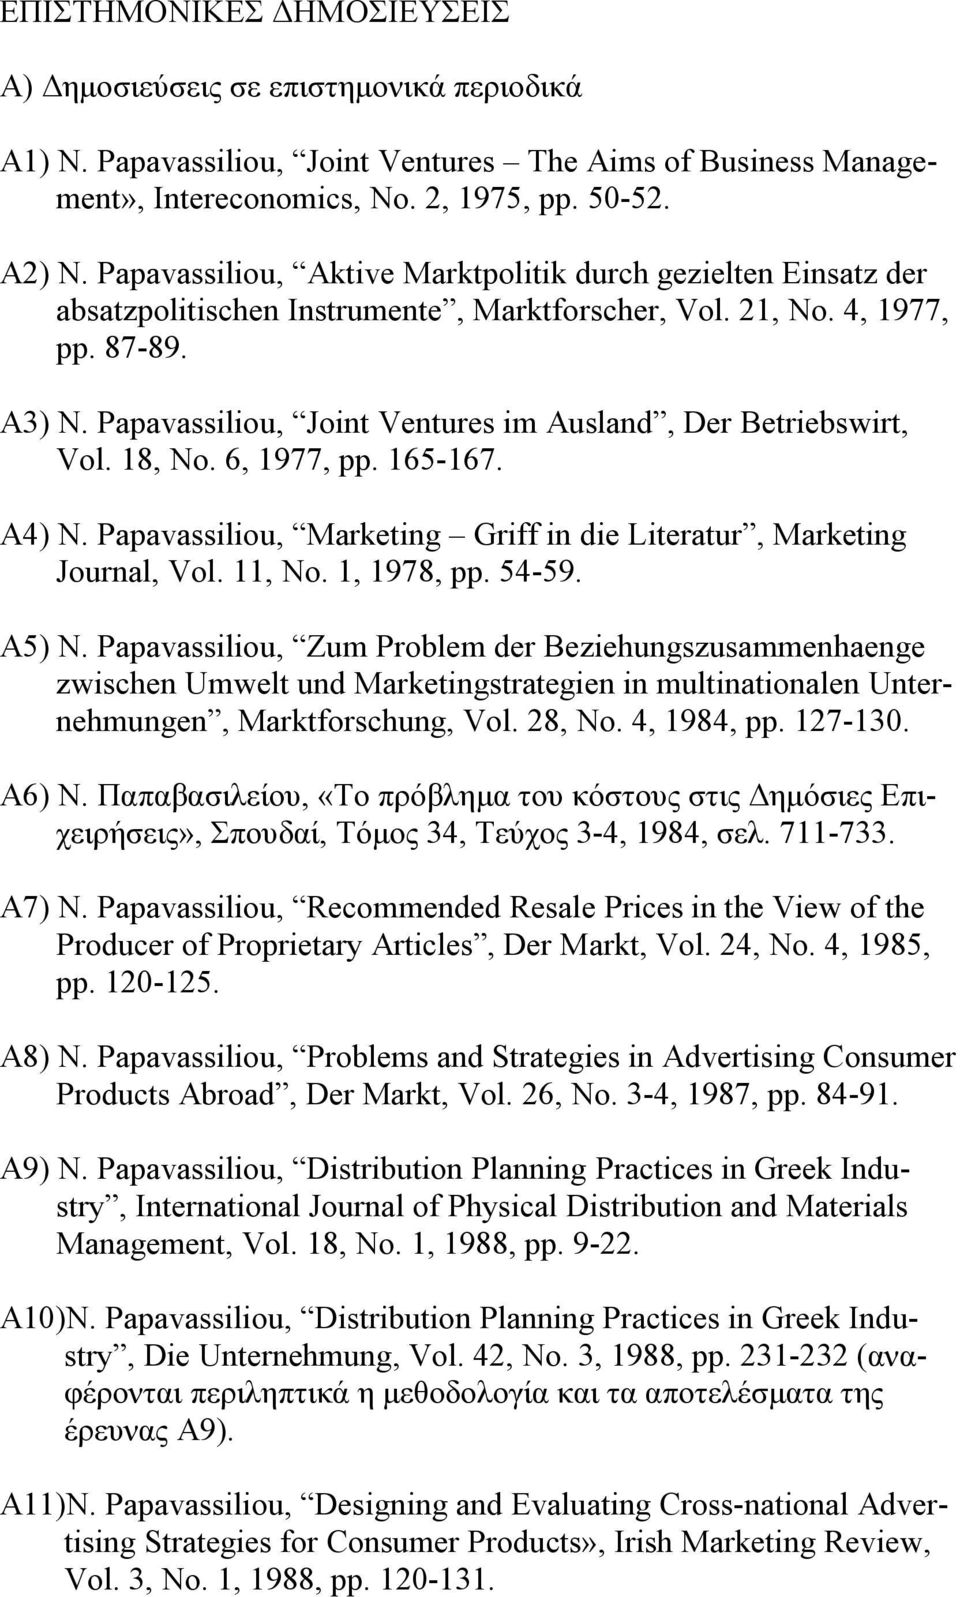 Papavassiliou, Joint Ventures im Ausland, Der Betriebswirt, Vol. 18, No. 6, 1977, pp. 165-167. A4) N. Papavassiliou, Marketing Griff in die Literatur, Marketing Journal, Vol. 11, No. 1, 1978, pp.